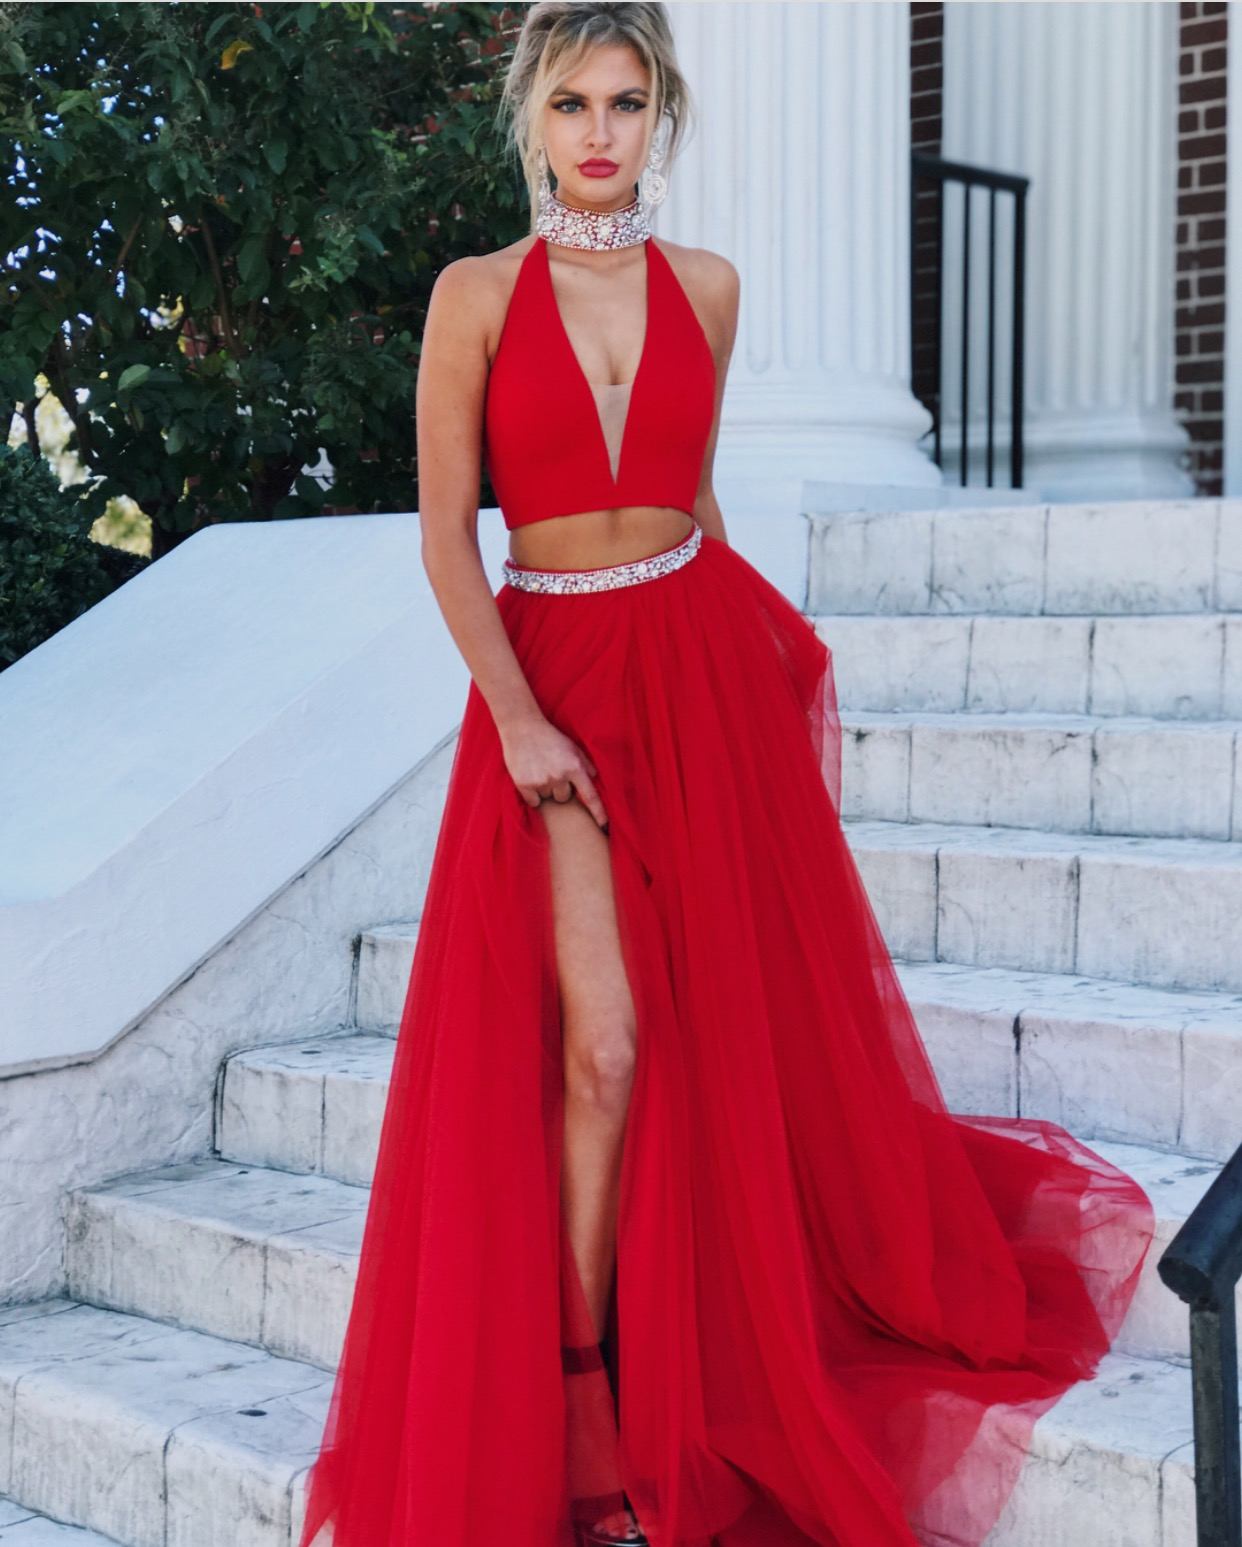 33ef06f6e552 Ulass 2018 Prom Dresses,Red Evening Gowns,Two Piece Prom Dress,High Neck Prom  Dress,Tulle Prom Dress,Deep V-neck Prom Dress,Hot Sale Prom Dress